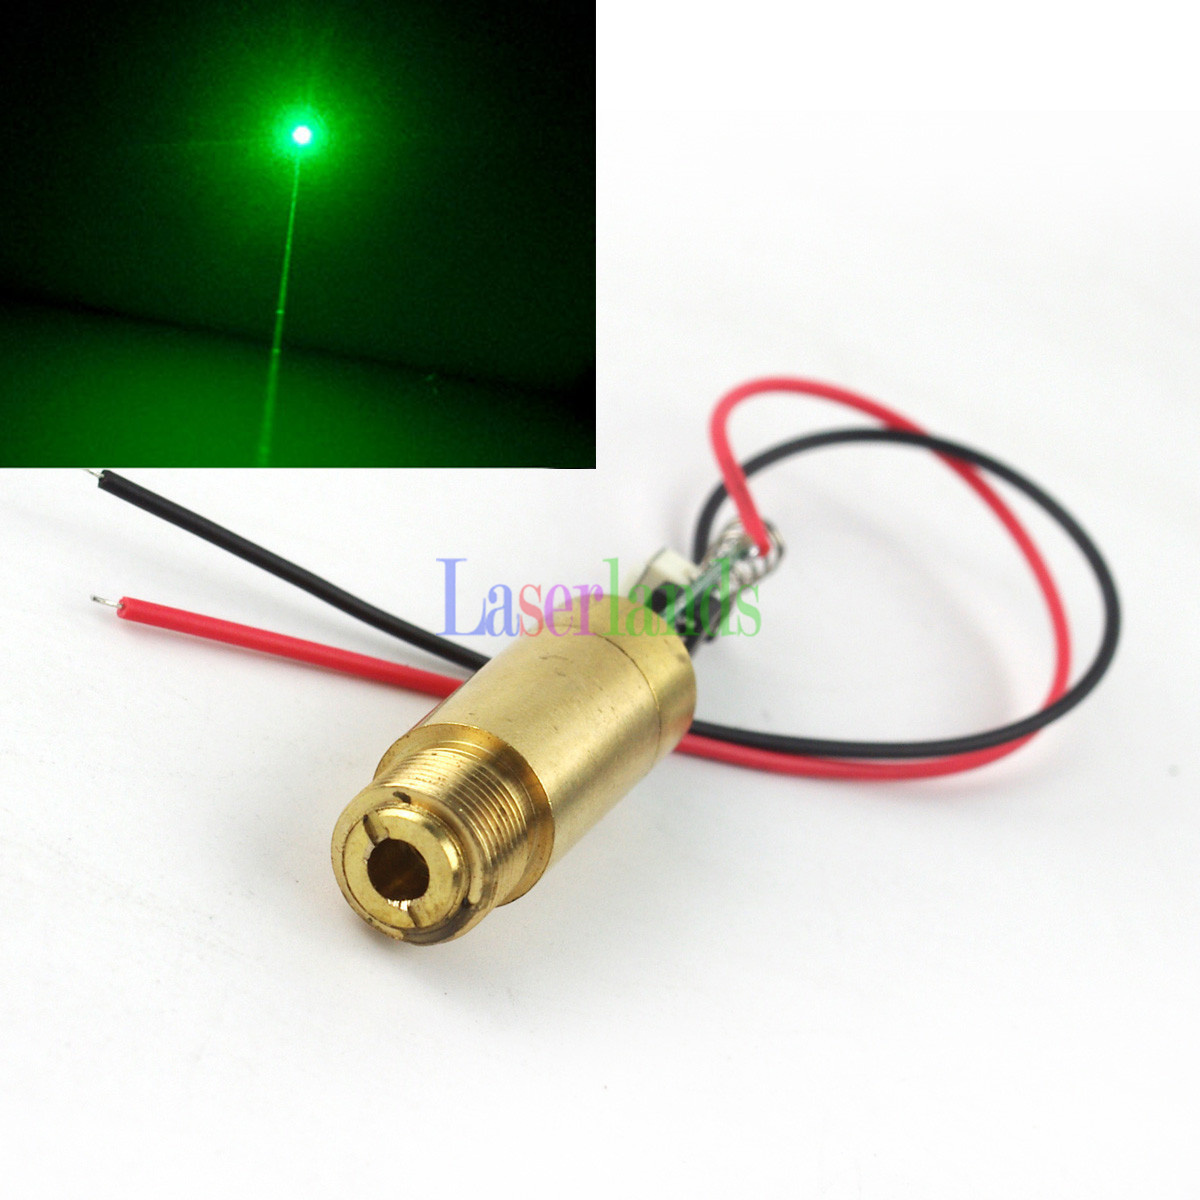 Dia.12mm APC 3.0-3.7V 532nm Green Laser 30mW-50mW 200mW DOT Laser Diode Module 20mw 532nm green laser module 3v 11 9mm